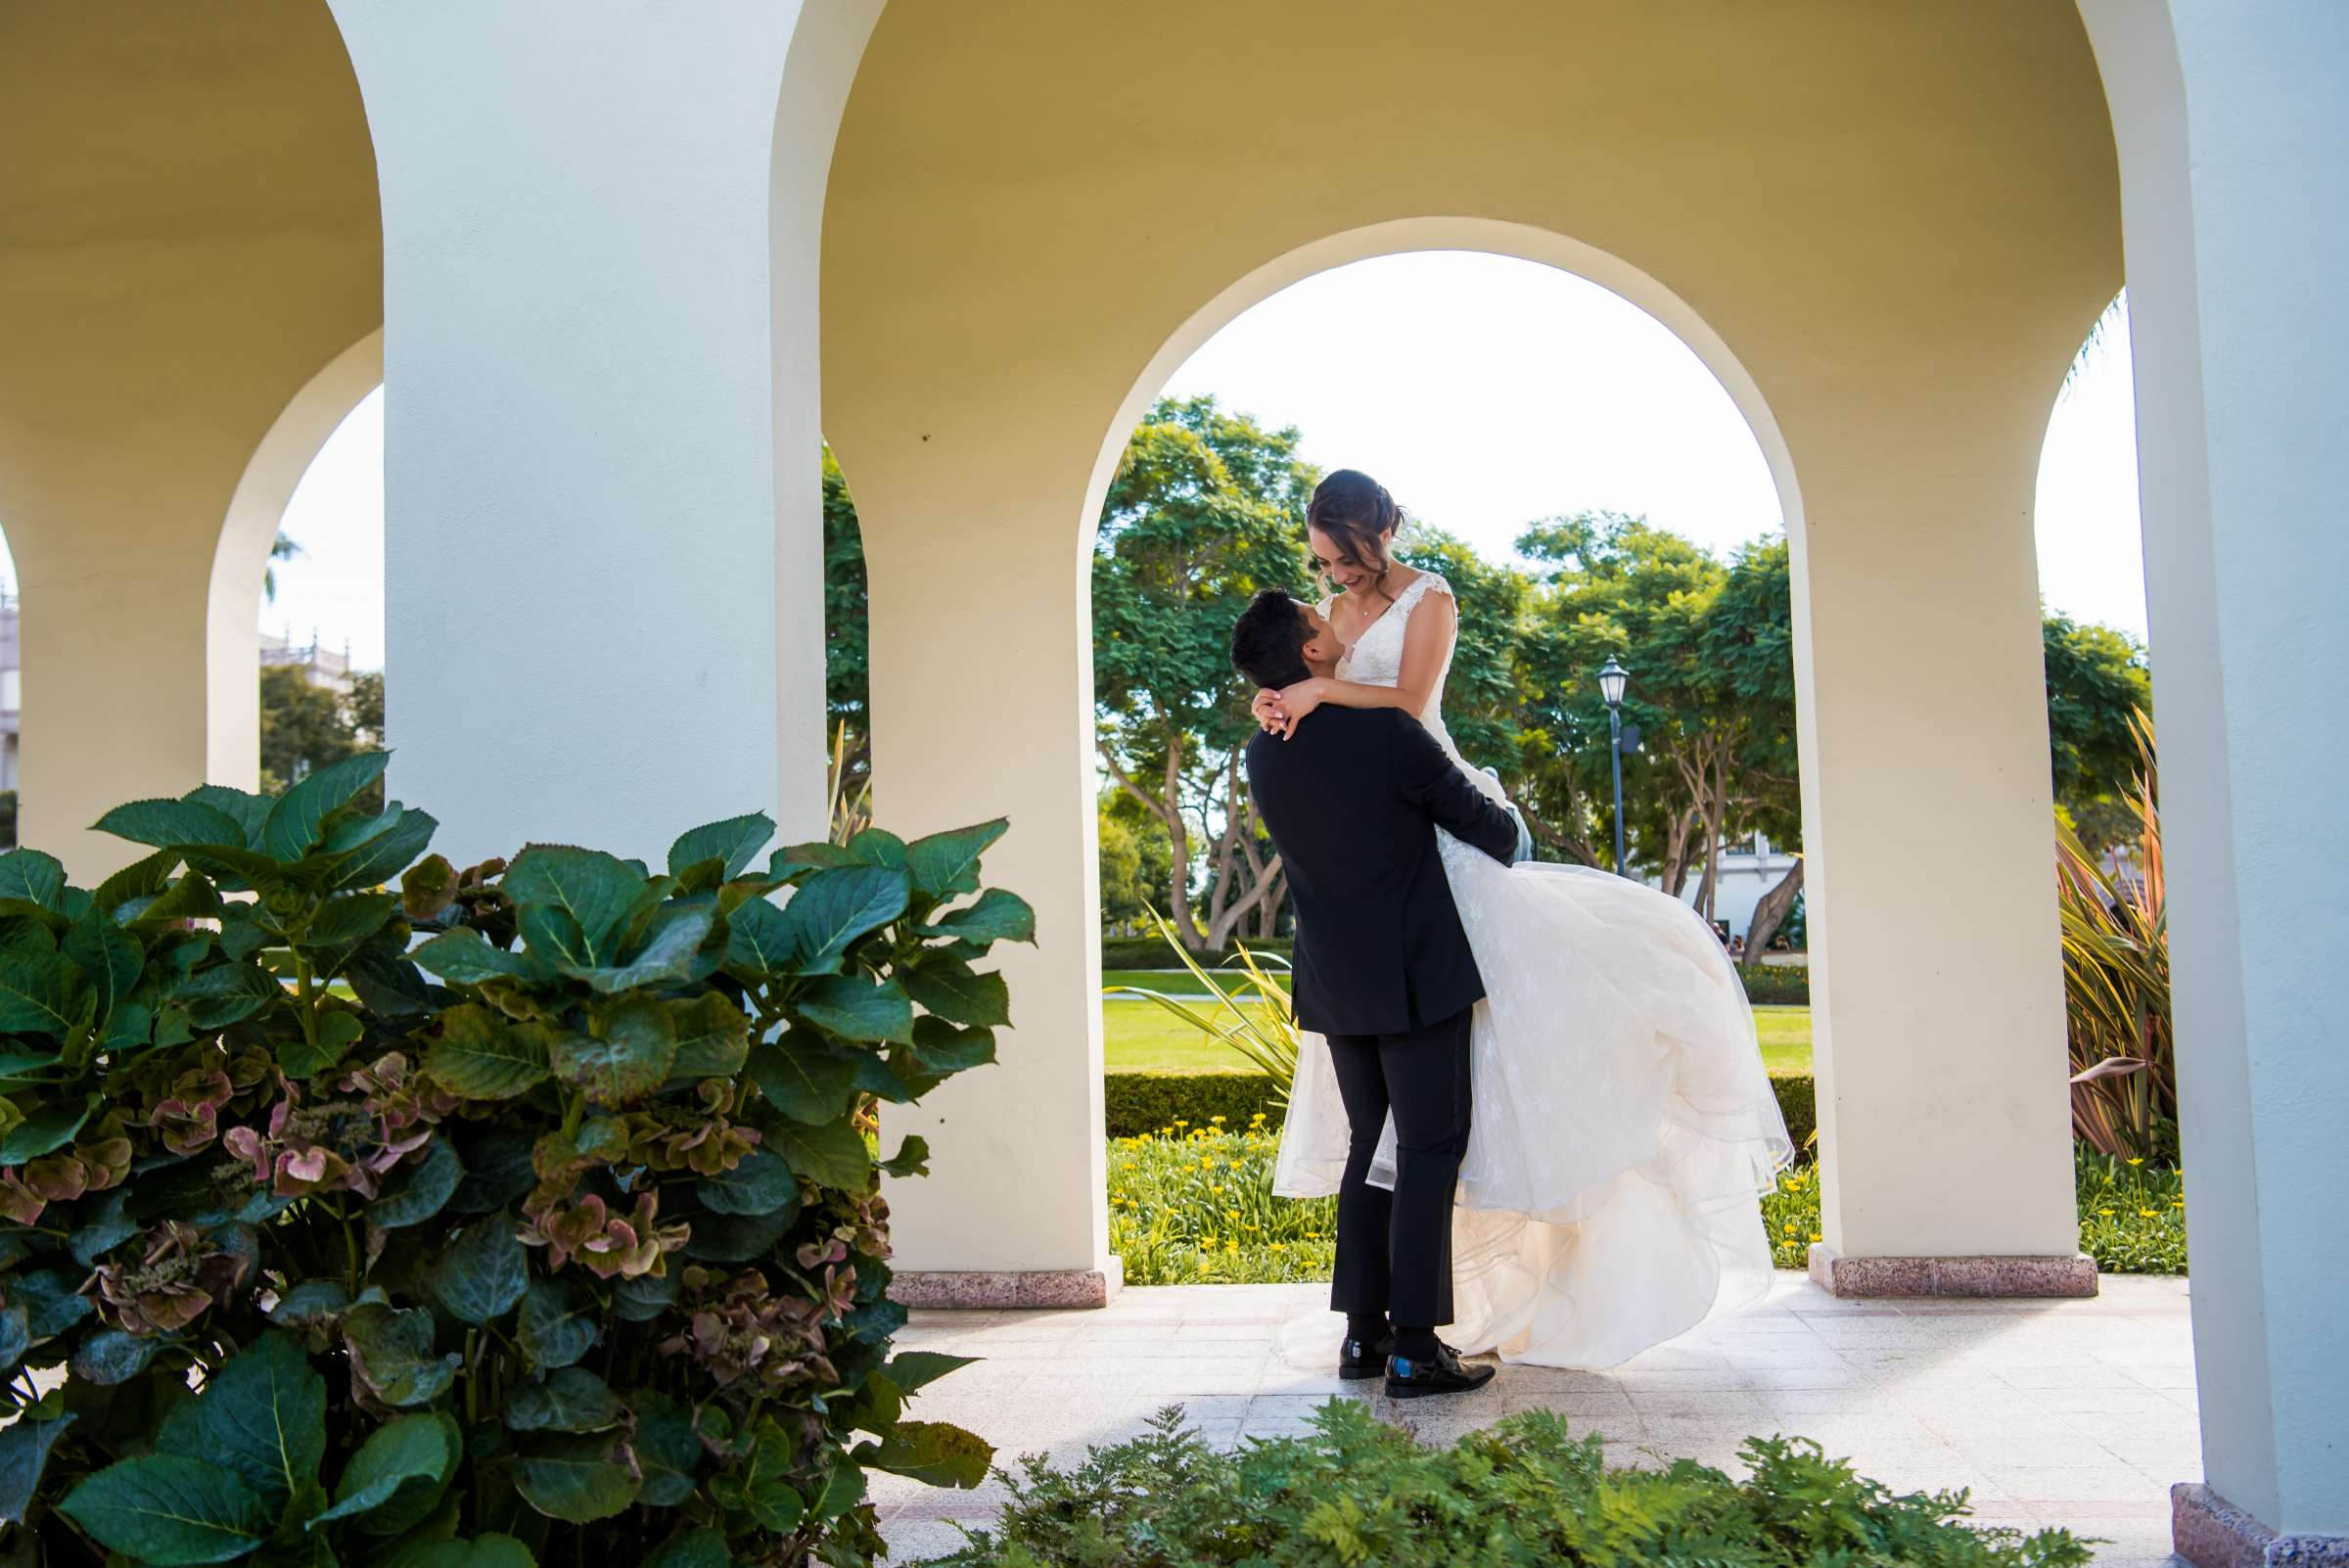 The Immaculata Wedding, Arianna and Jonah Wedding Photo #25 by True Photography